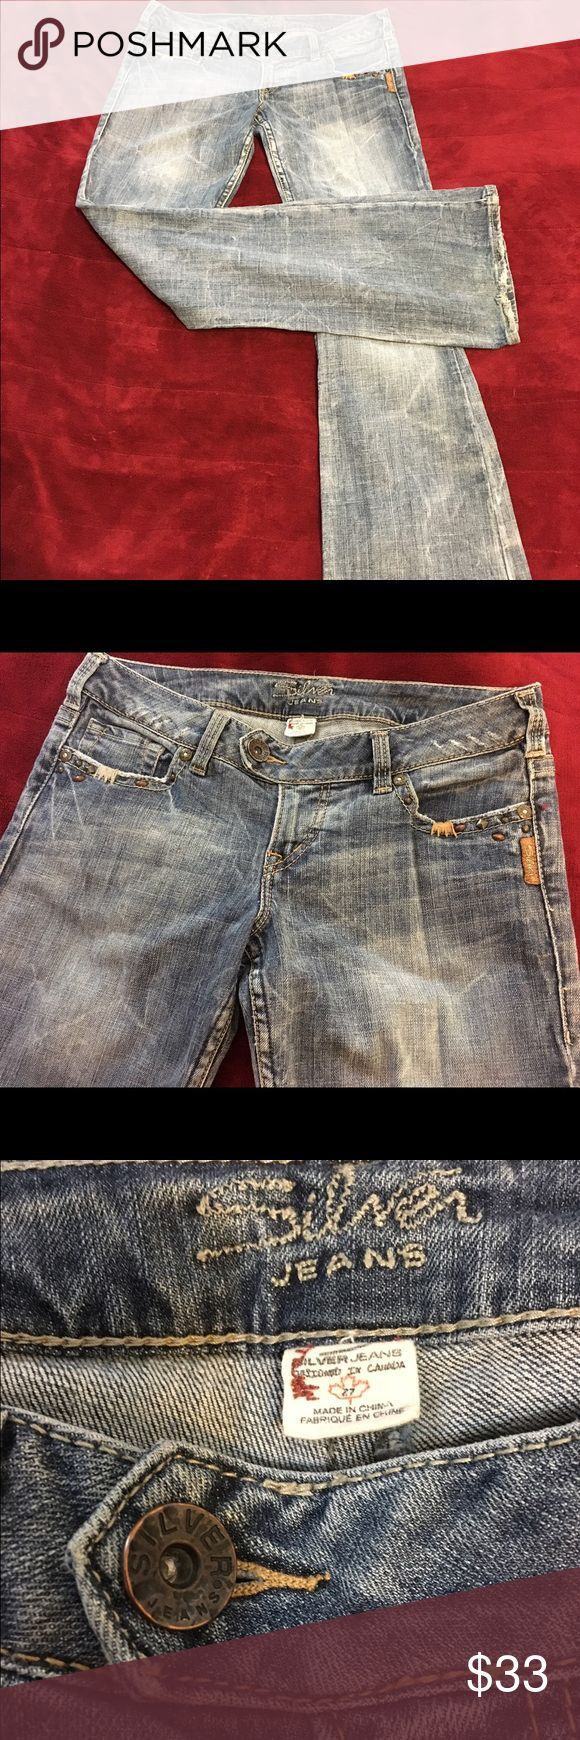 Women's Silver Jeans 👖 Tuesday Flap.. Size 27/31 Adorable jeans 👖 with gorgeous detail throughout. Silver Jeans Jeans Flare & Wide Leg